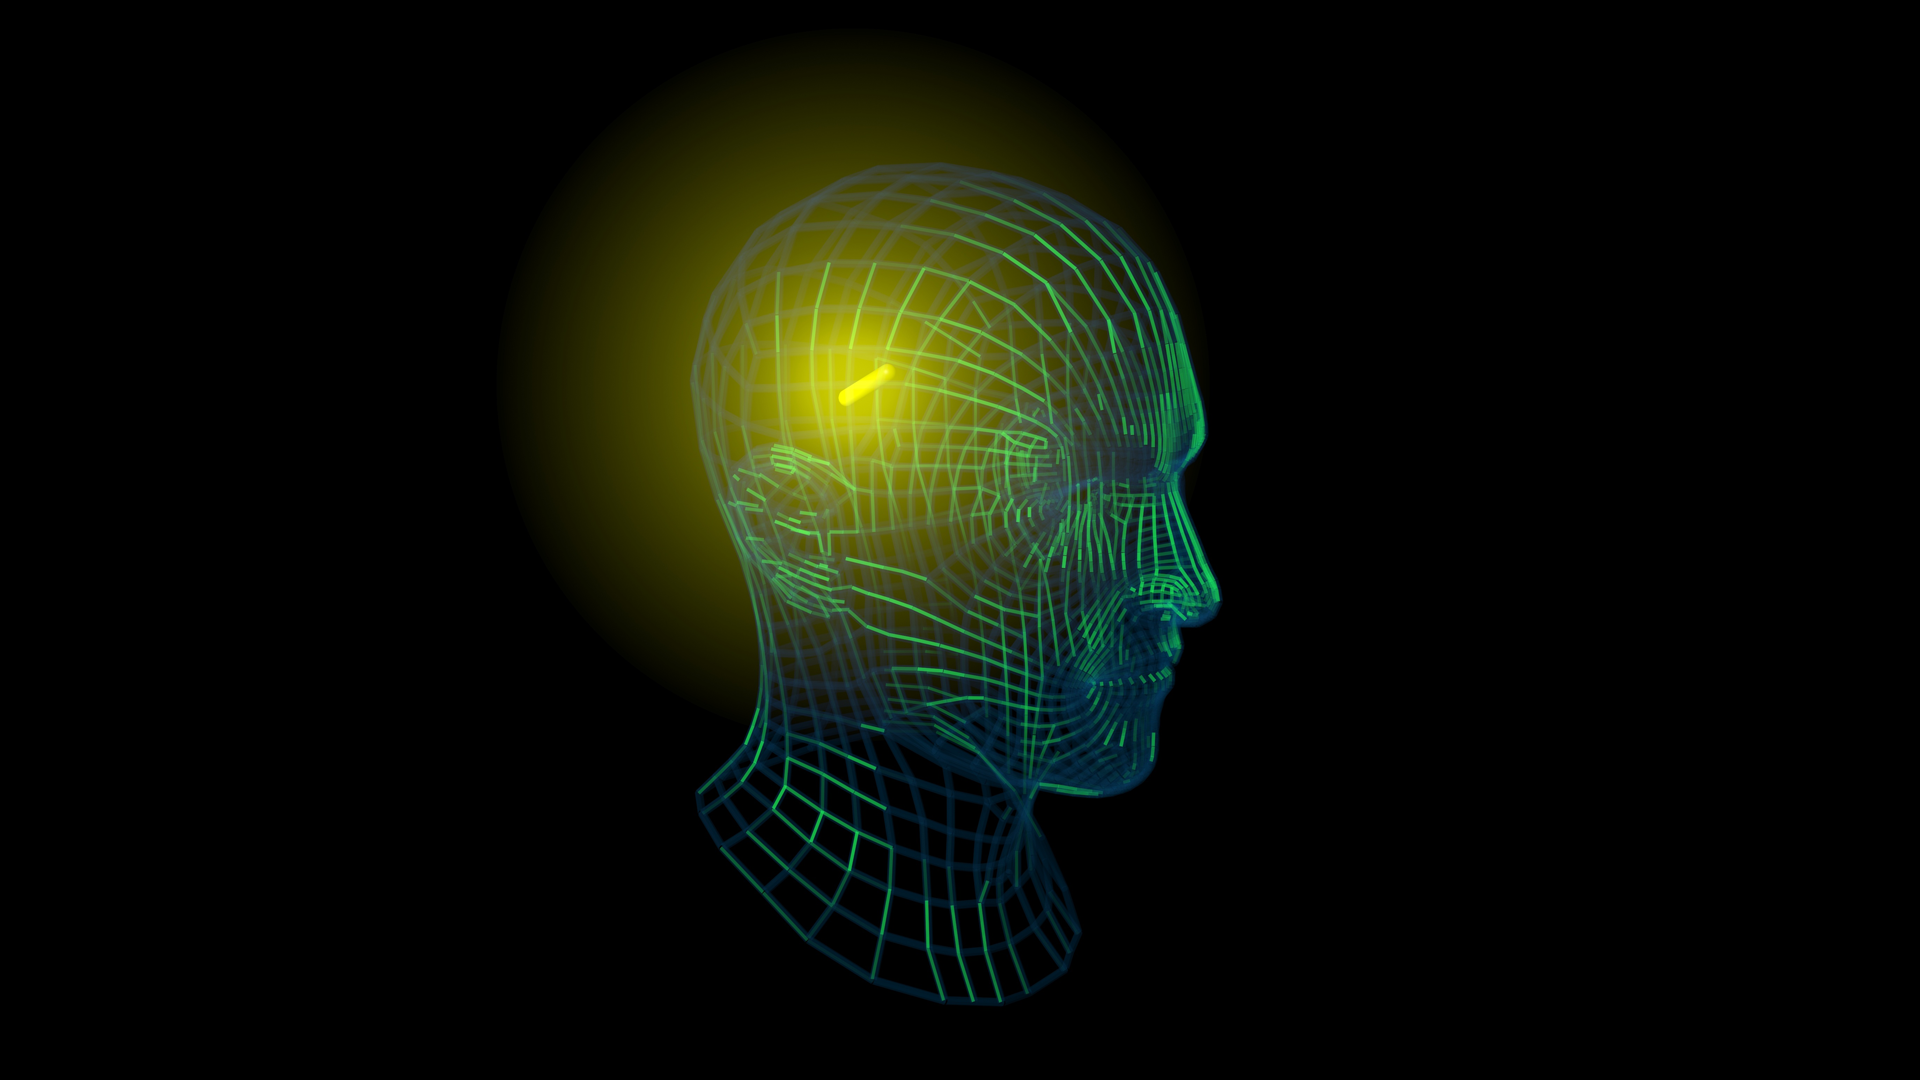 A wire frame of a human head with a glowing point representing a medical device implant.